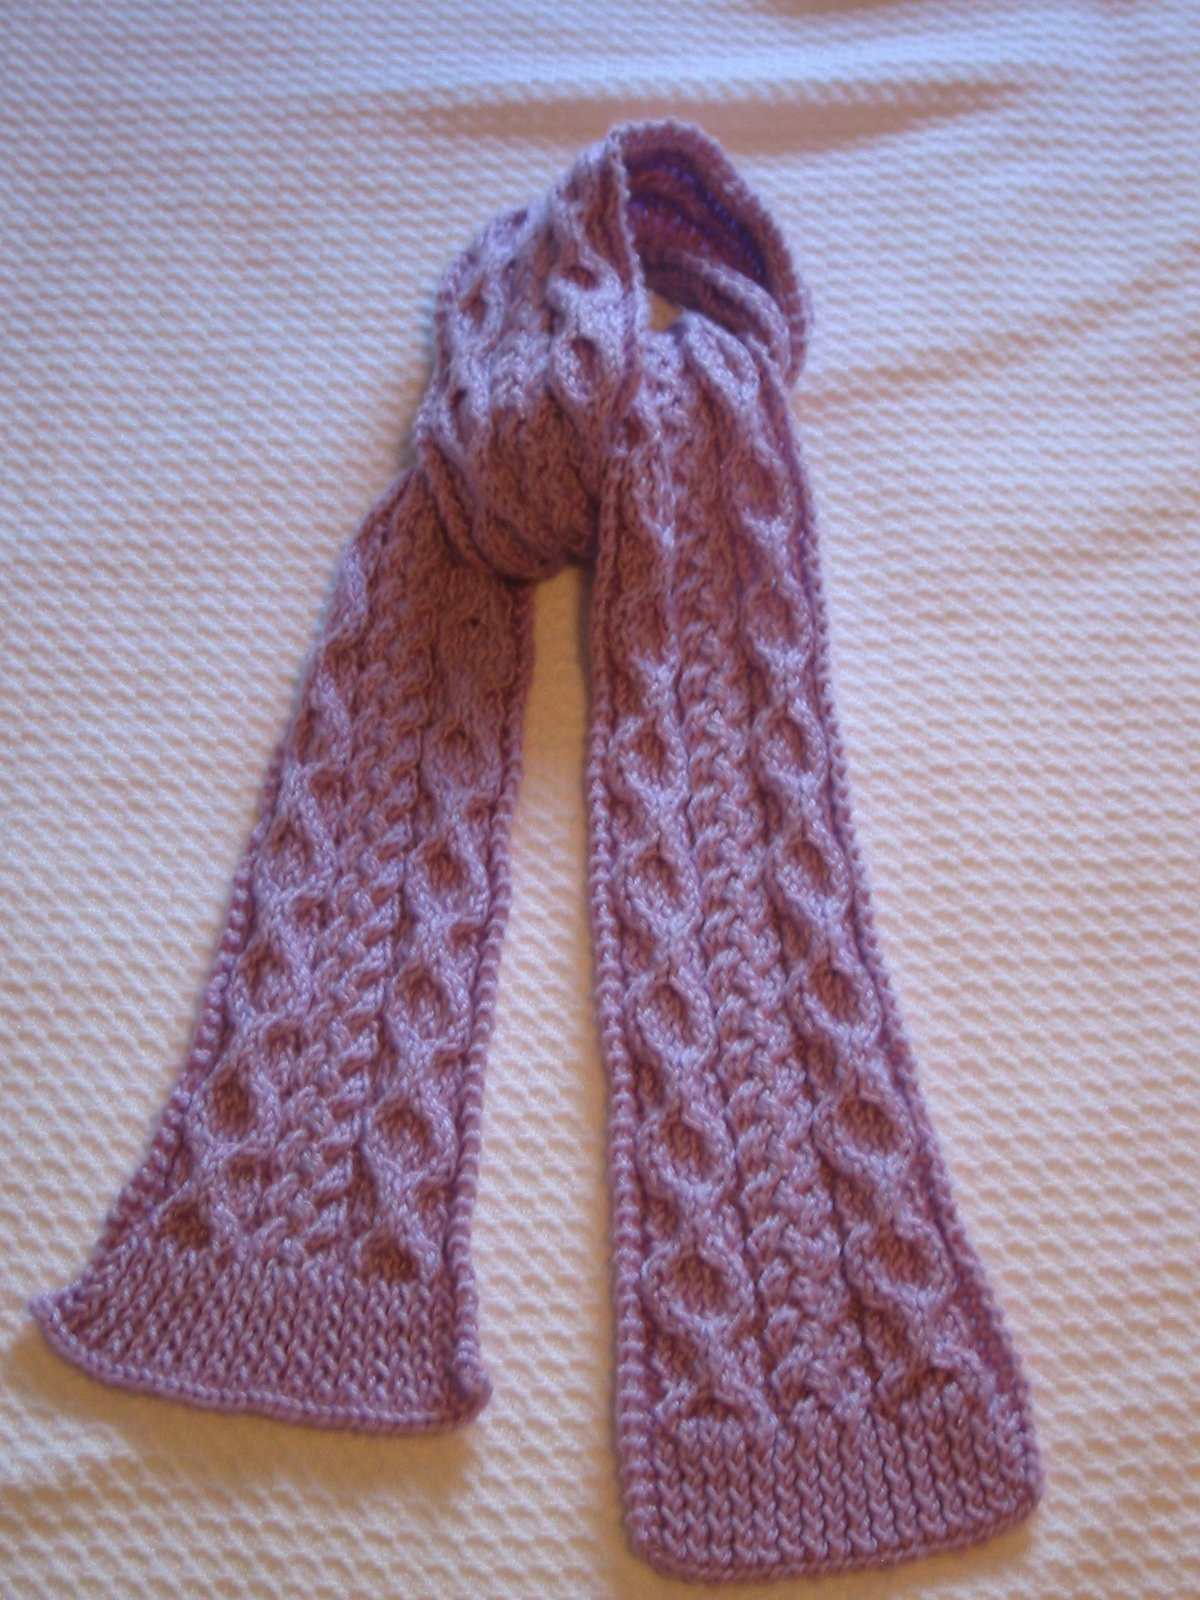 Knitting Lovely Cable Knit Scarf Pattern Of Charming 48 Ideas Knitting